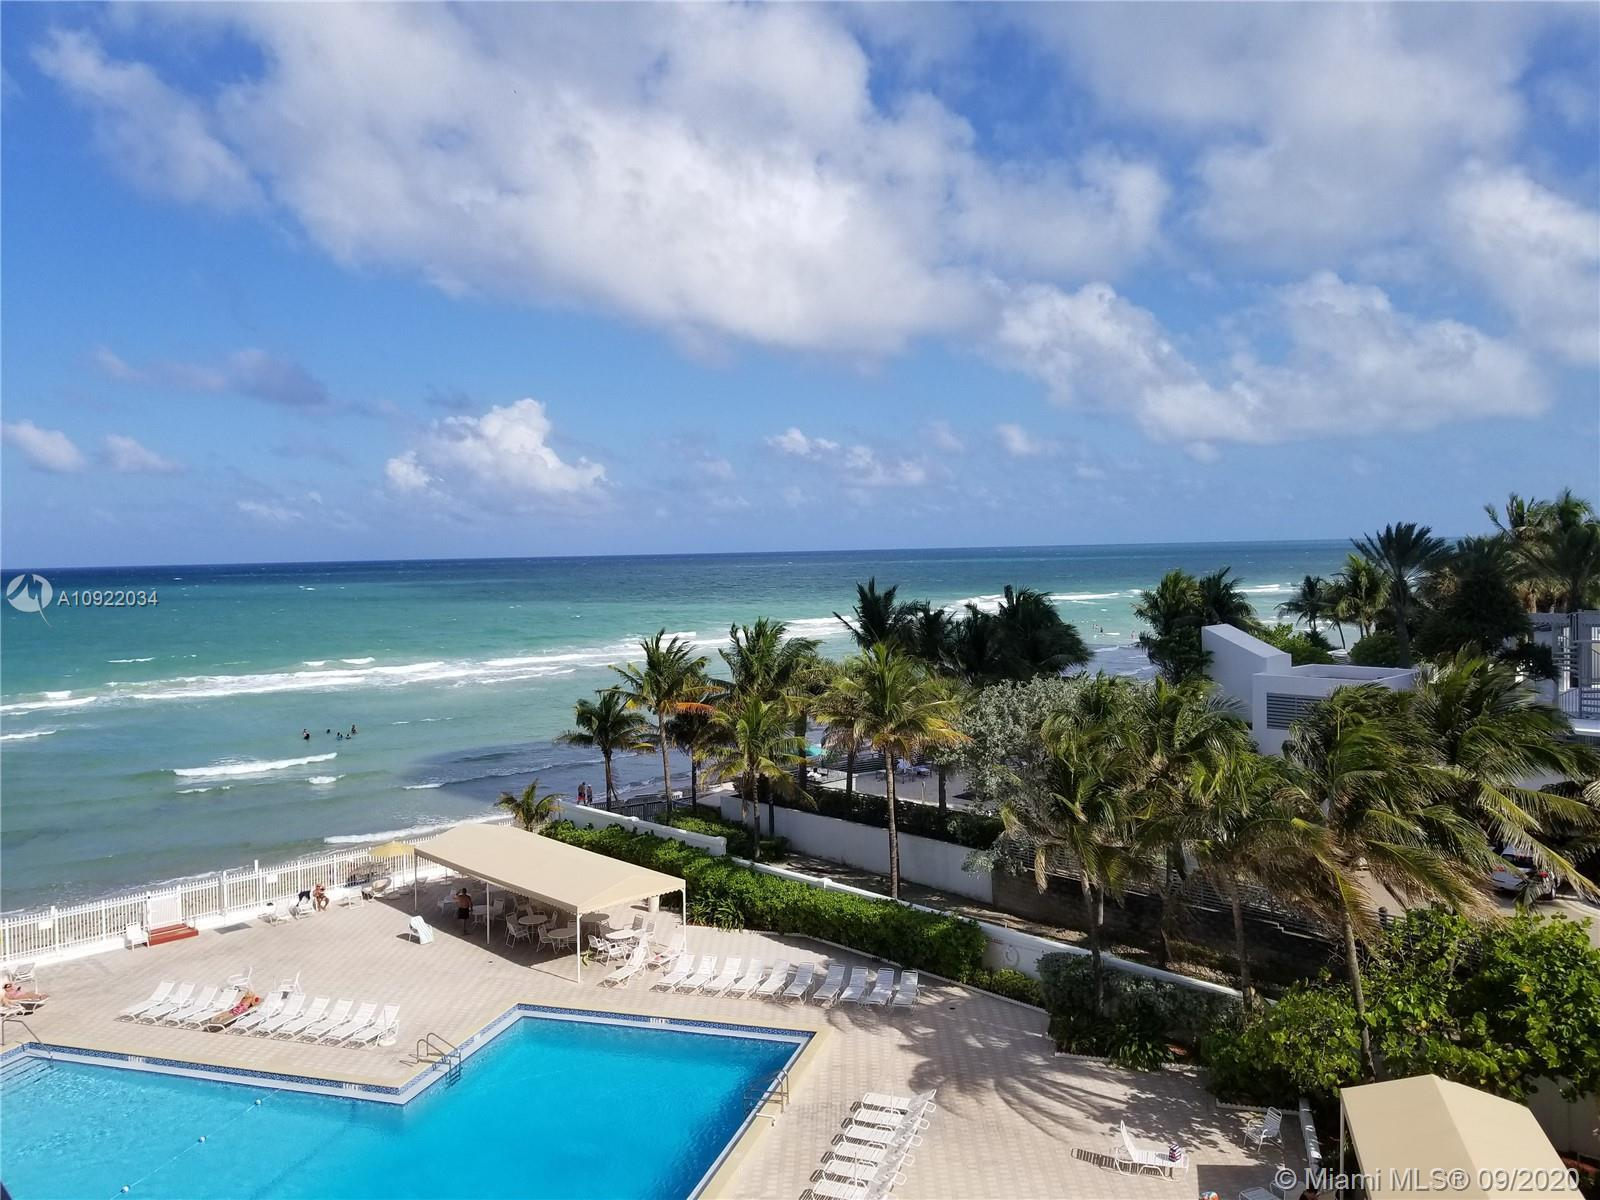 DO NOT MISS THIS OPPORTUNITY TO OWN A FULLY RENOVATED OCEANFRONT 2 BEDROOM CONDO AT THIS UNBELIEVABL